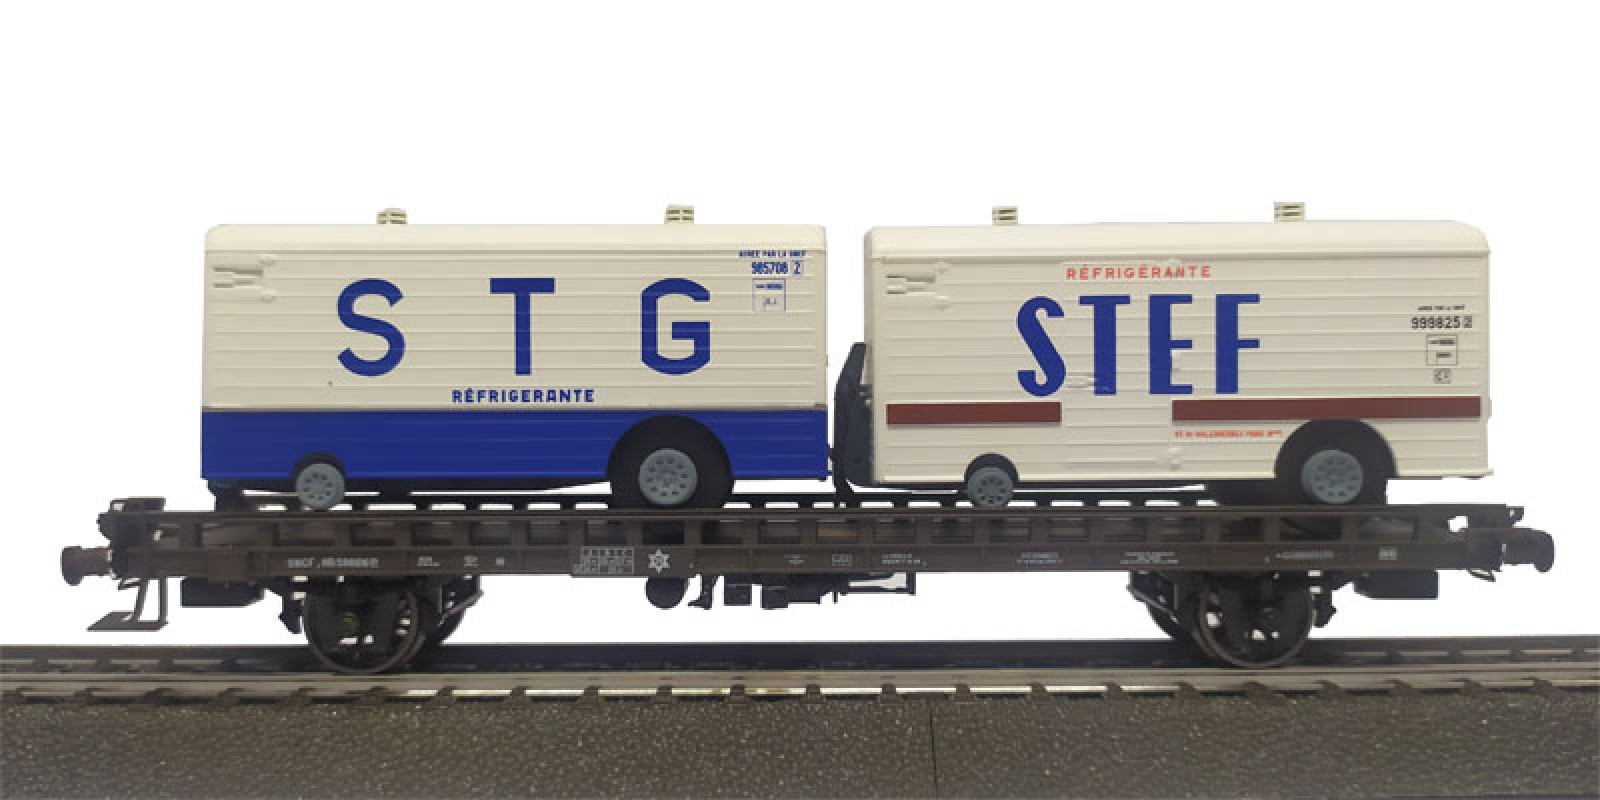 REWB635 Double carrier wagon loaded with refrigerated trailer of the SNCF